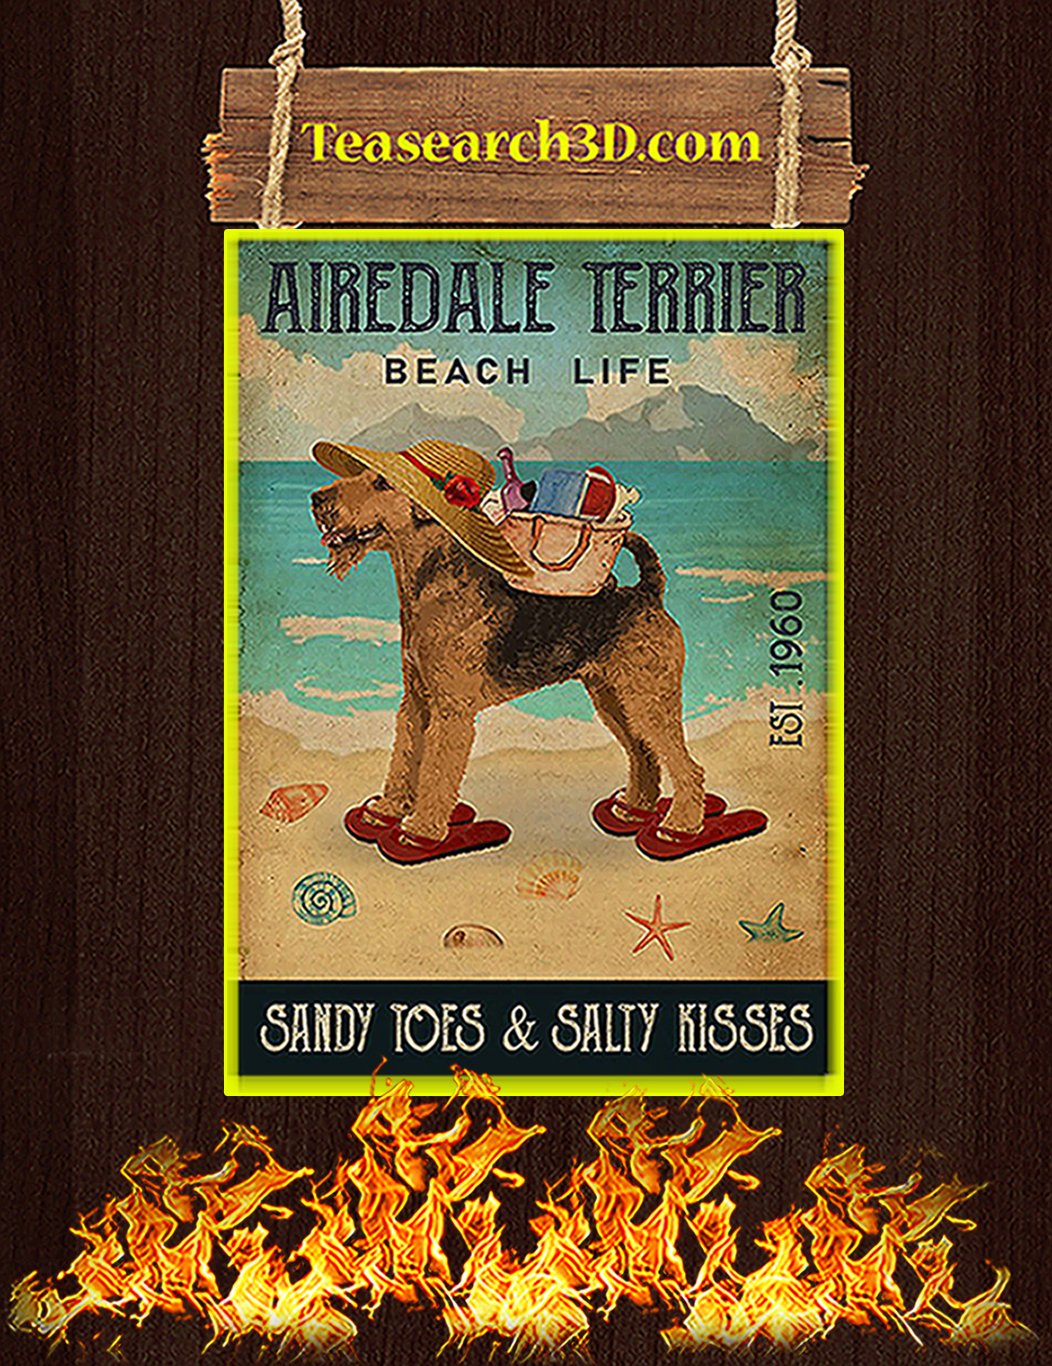 Airedale terrier beach life sandy toes and salty kisses poster A1